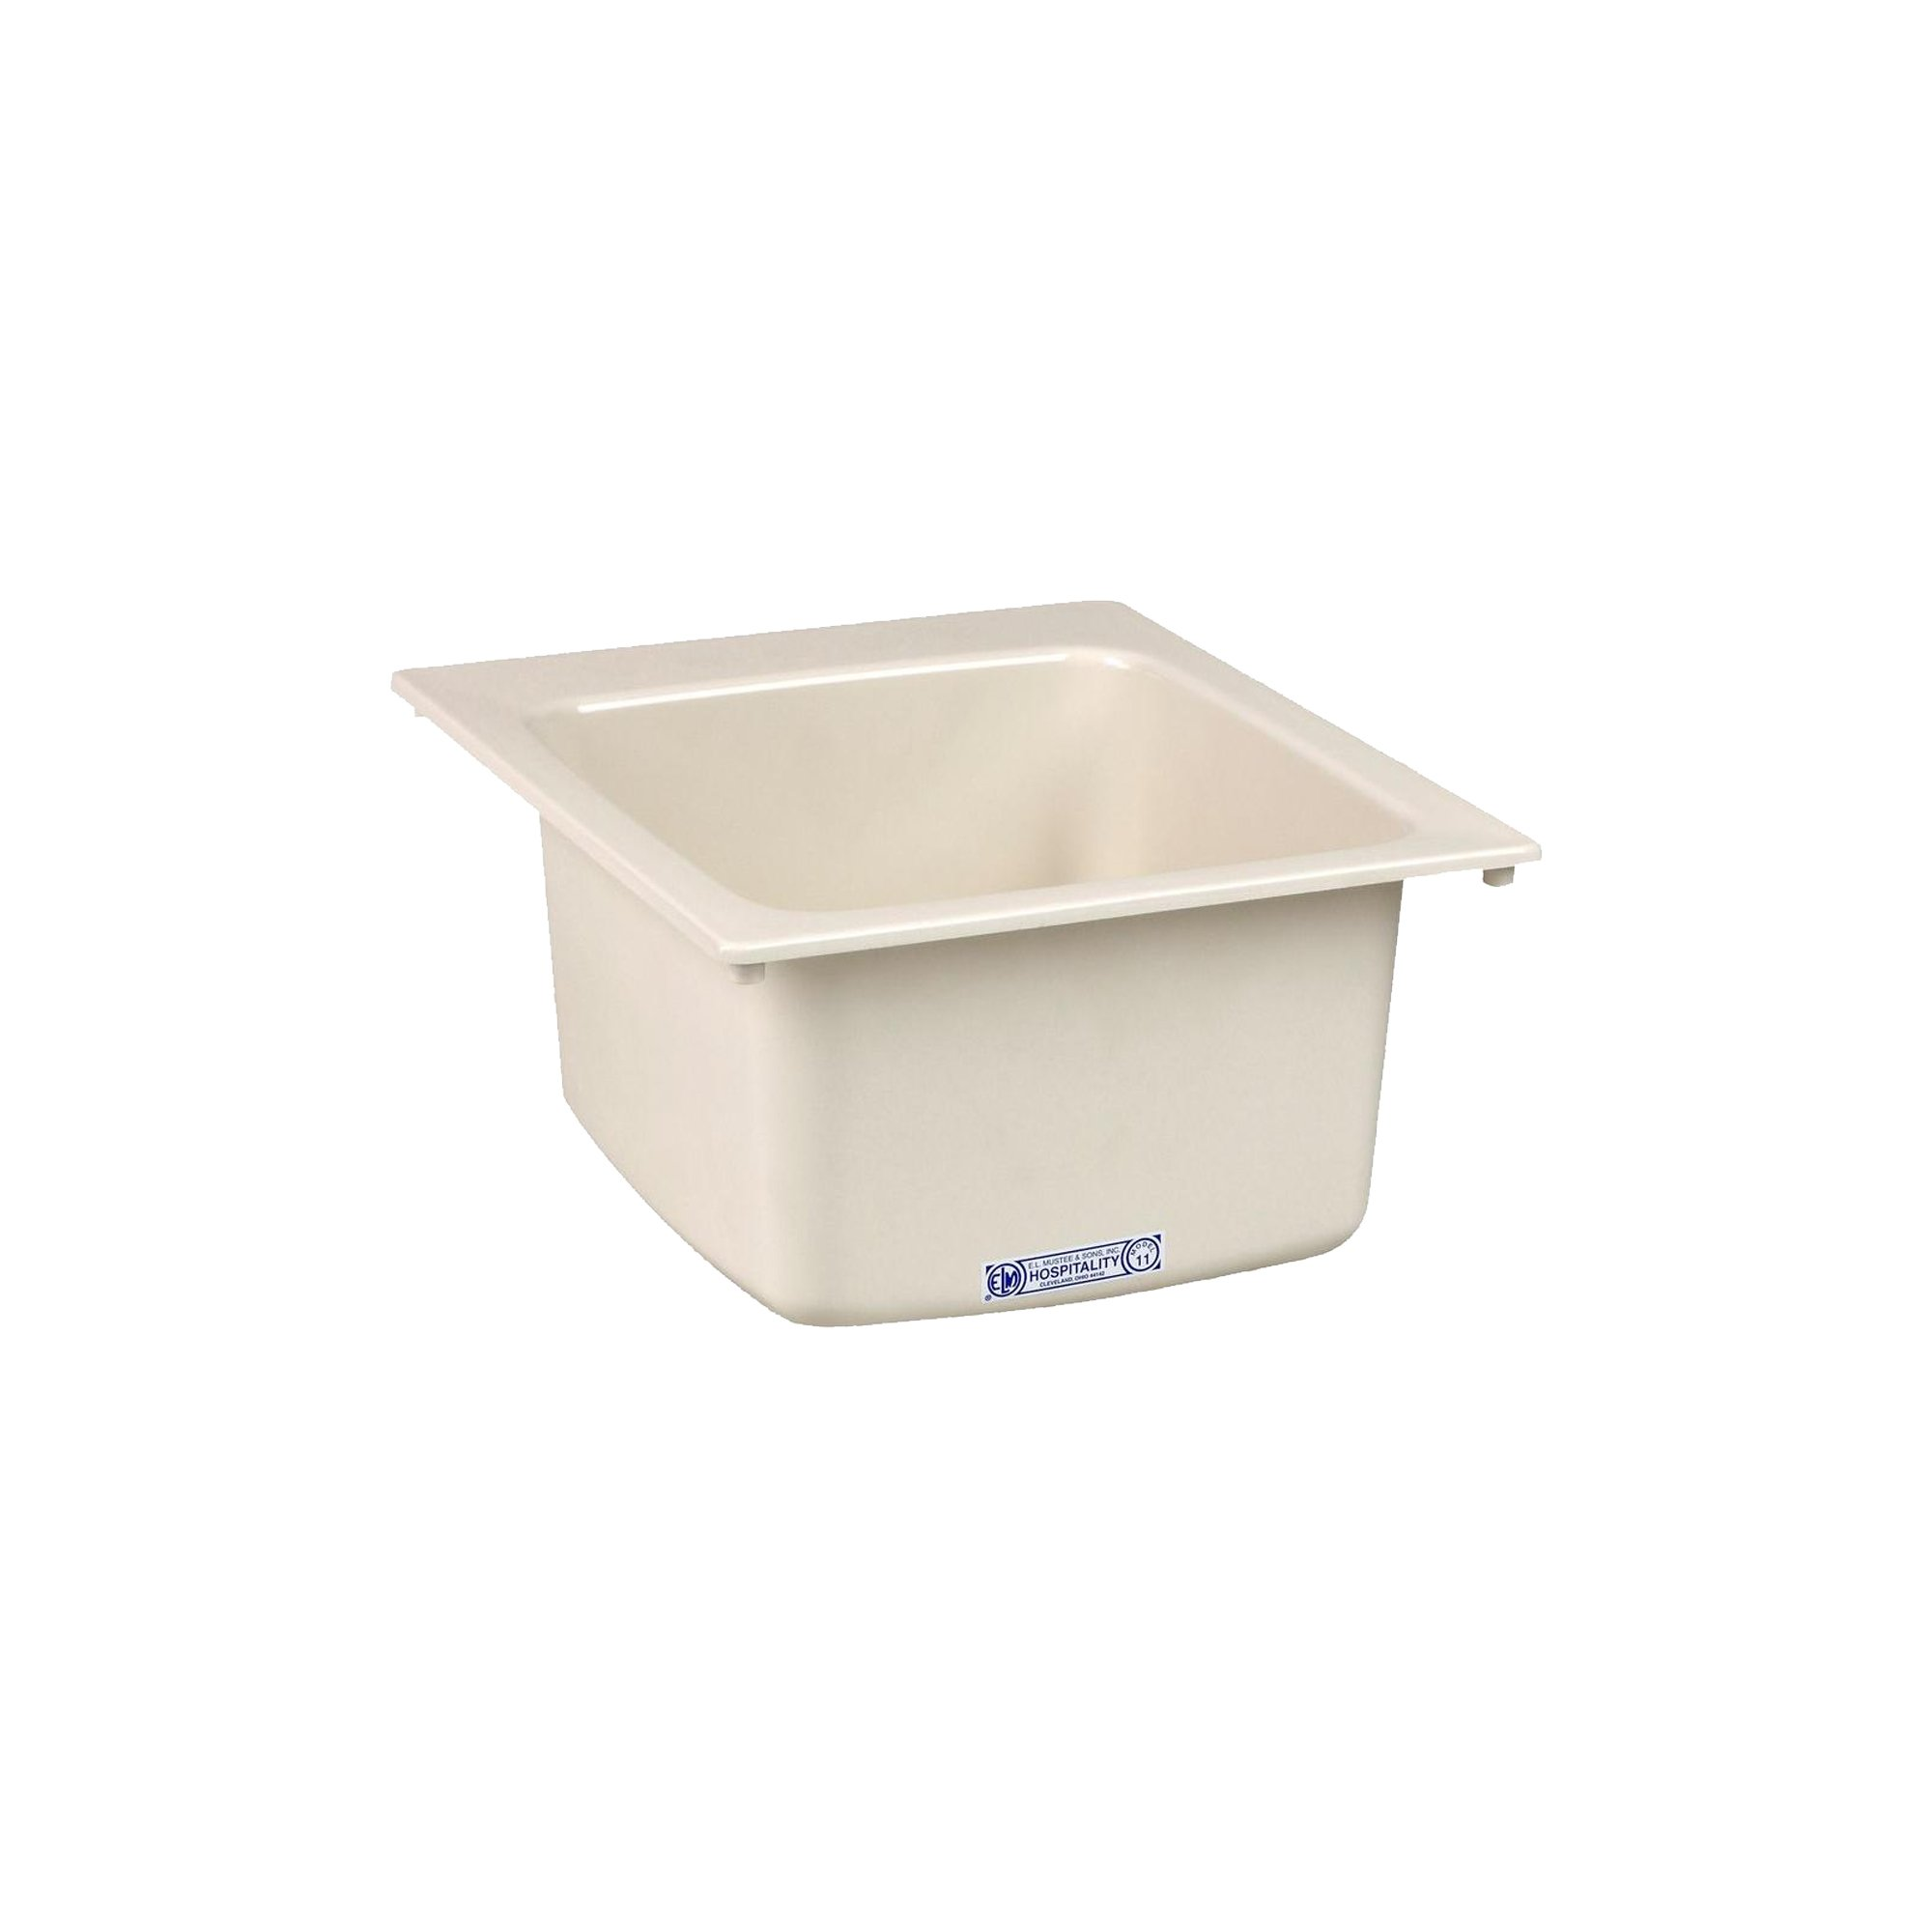 Mustee 11BT Utility Sink, 17-Inch x 20-Inch, Biscuit